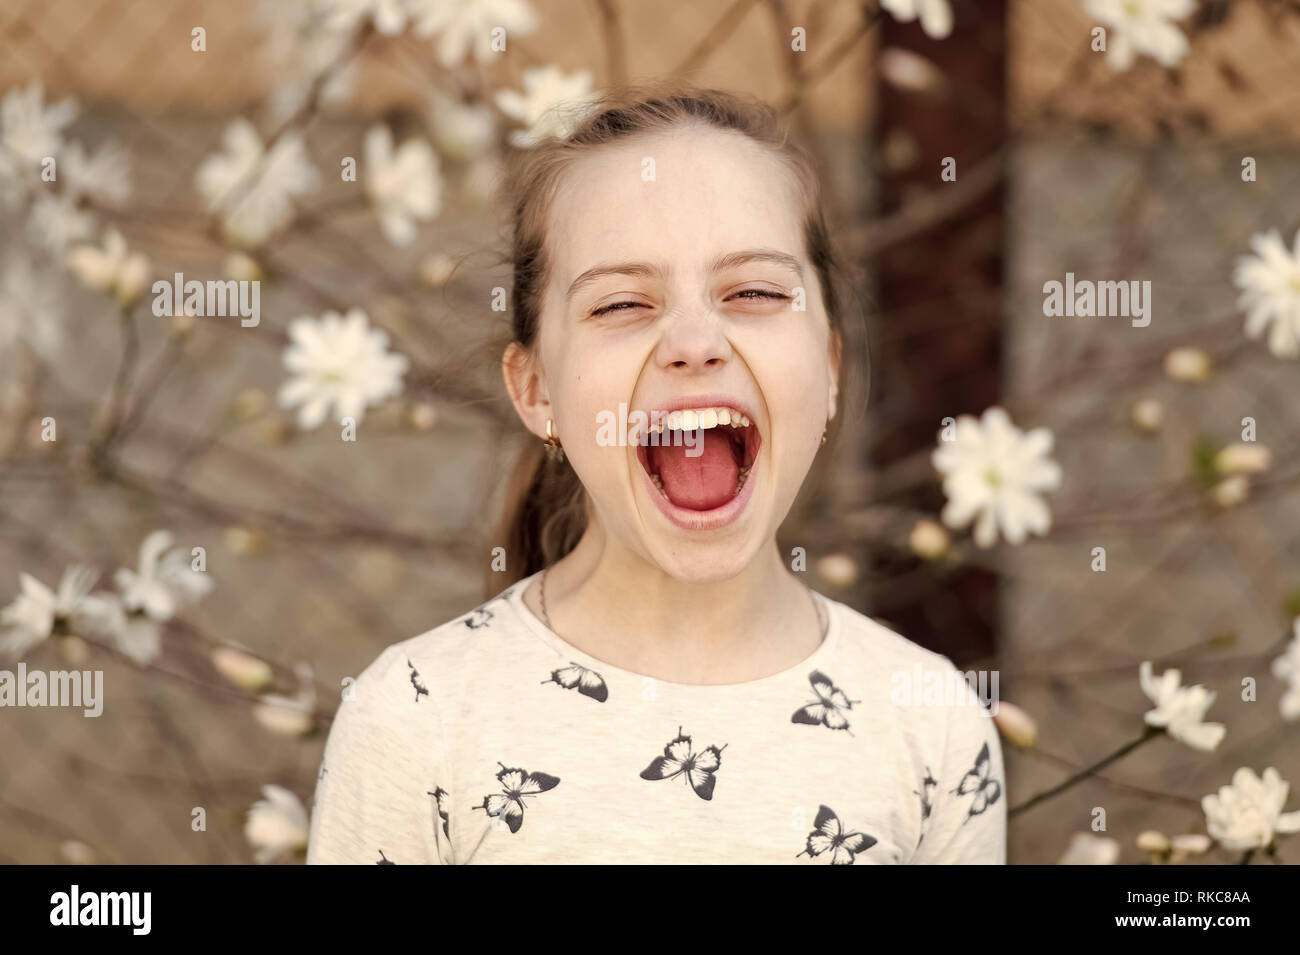 Child smile on floral blossom in spring. Child with fresh look and long hair. Stock Photo